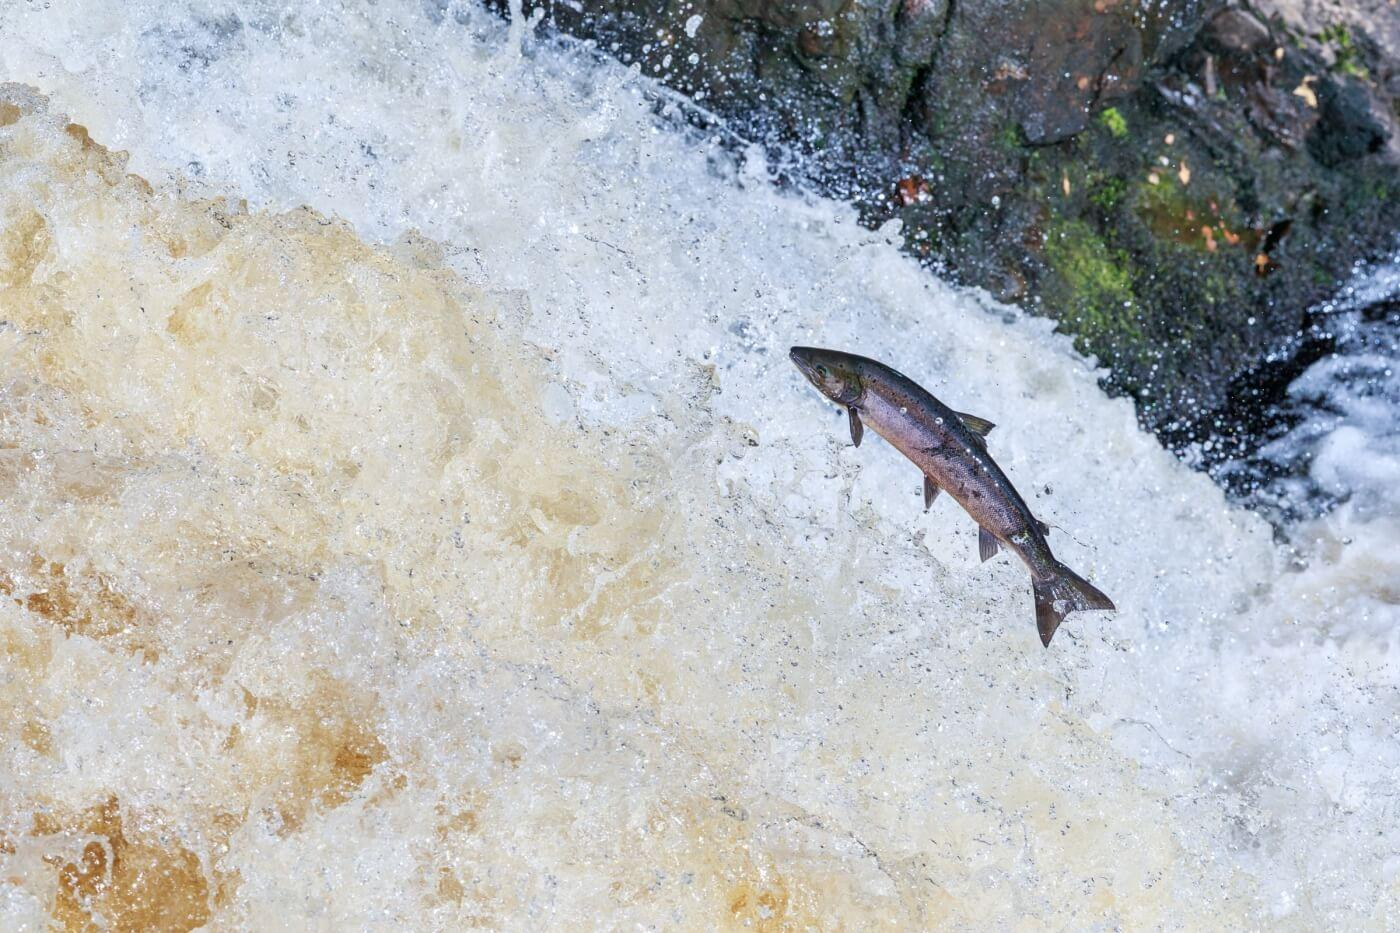 Salmon migrating to spawing grounds. Photo by Chanonry